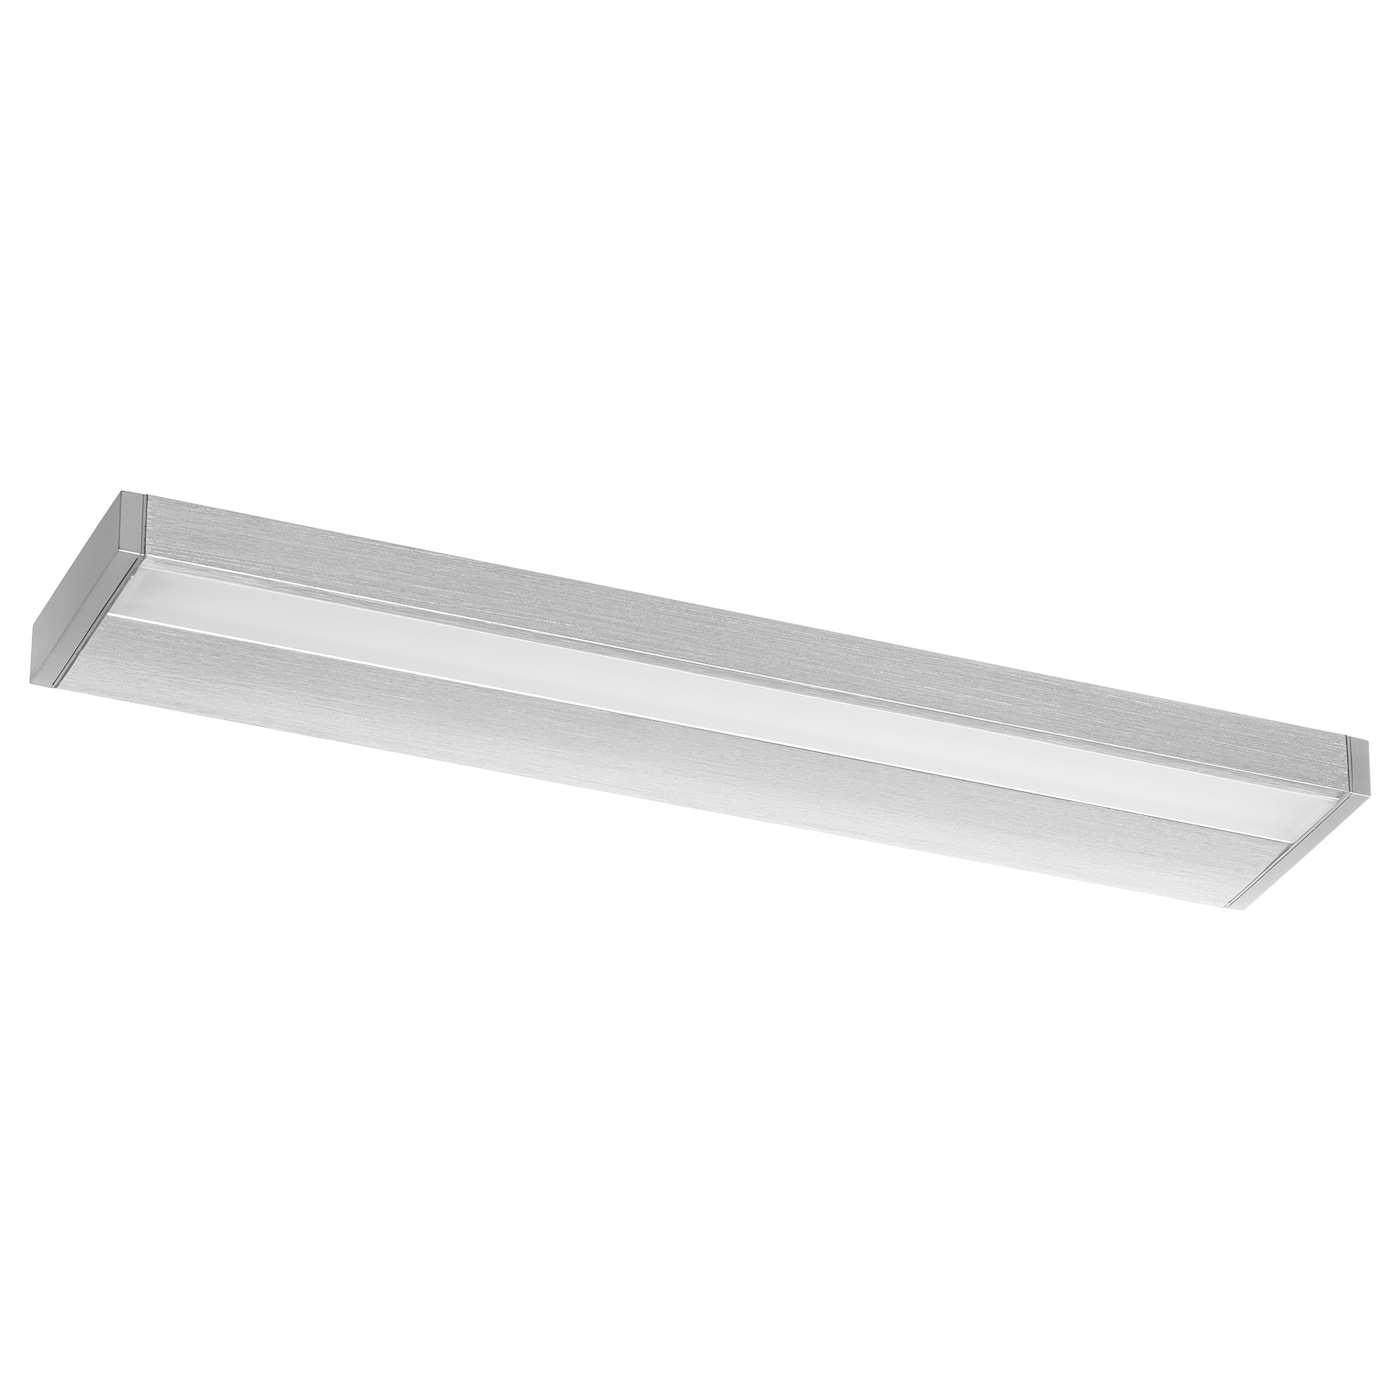 Ikea Godmorgon Led Cabinetwall Lighting